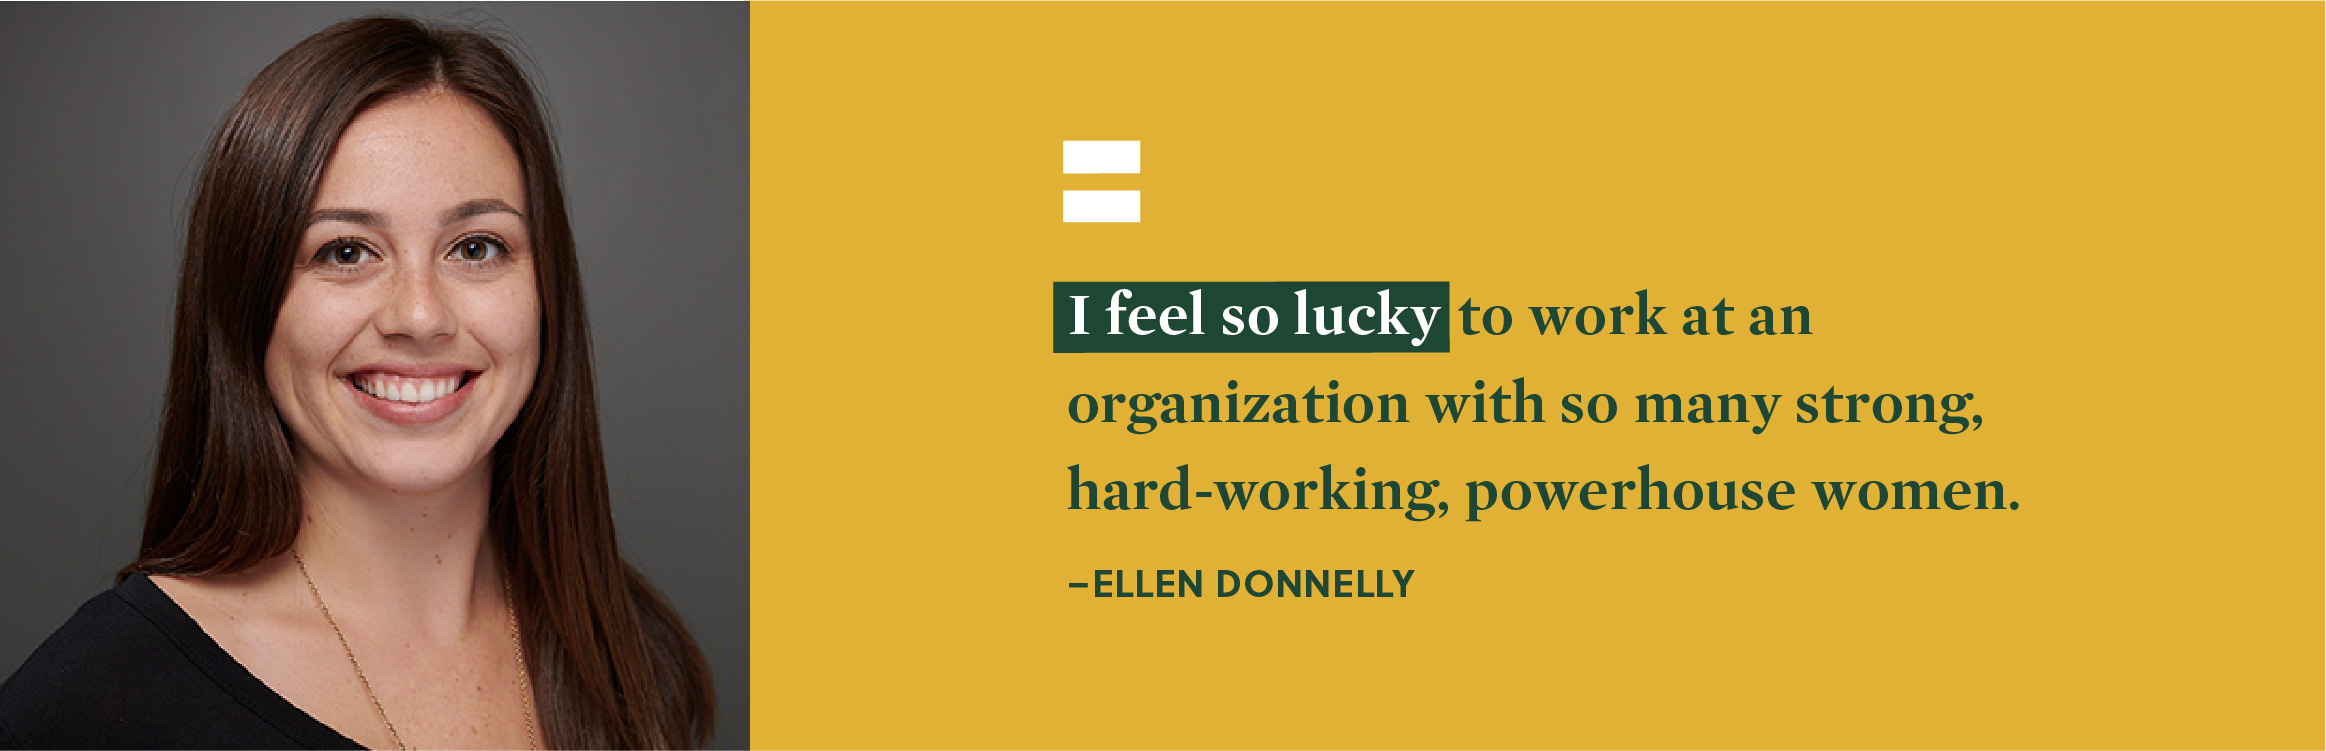 """I feel so lucky to work at an organization with so many strong, hard-working, powerhouse women."" - Ellen Donnelly."